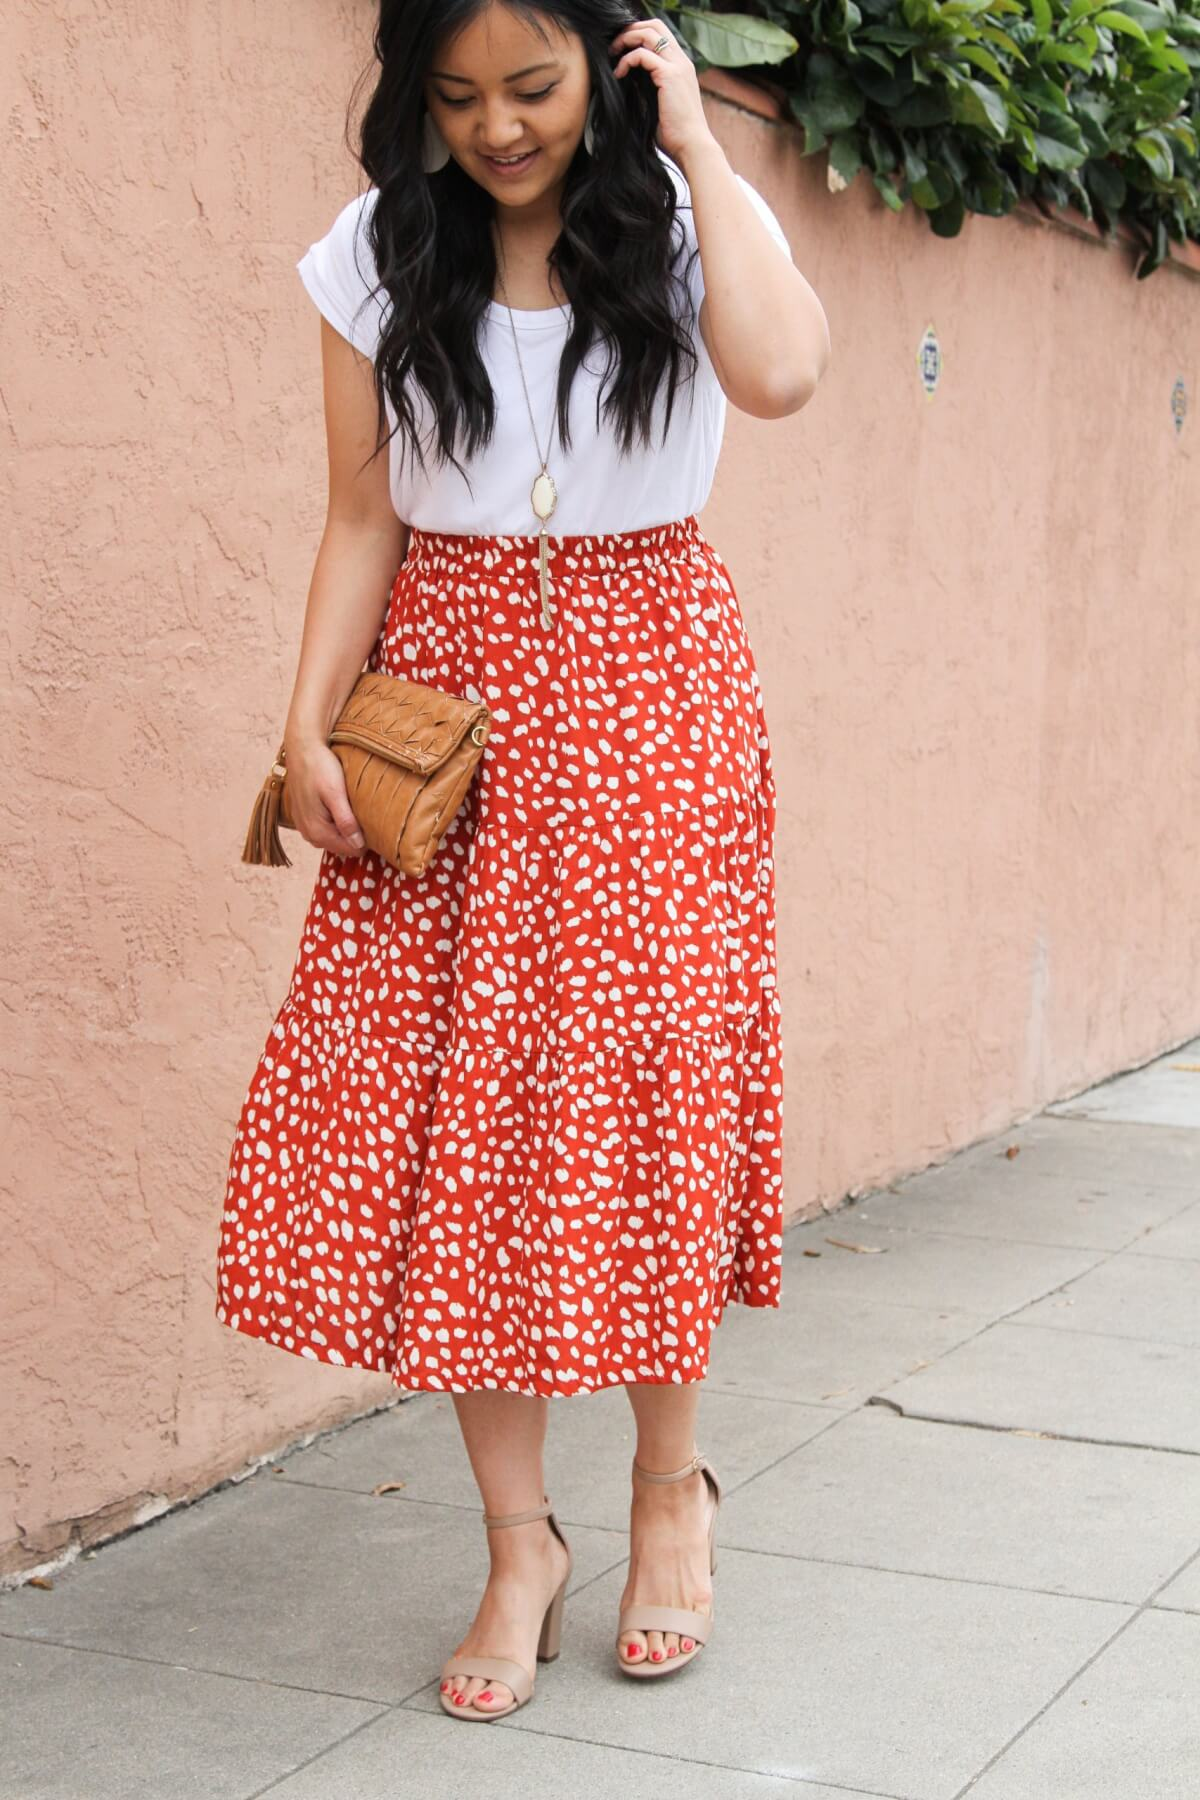 Summer Shoes Dressy Casual Outfit: white tee + red and white tiered midi skirt + nude open toe heels + white earrings + pendant necklace + cognac clutch